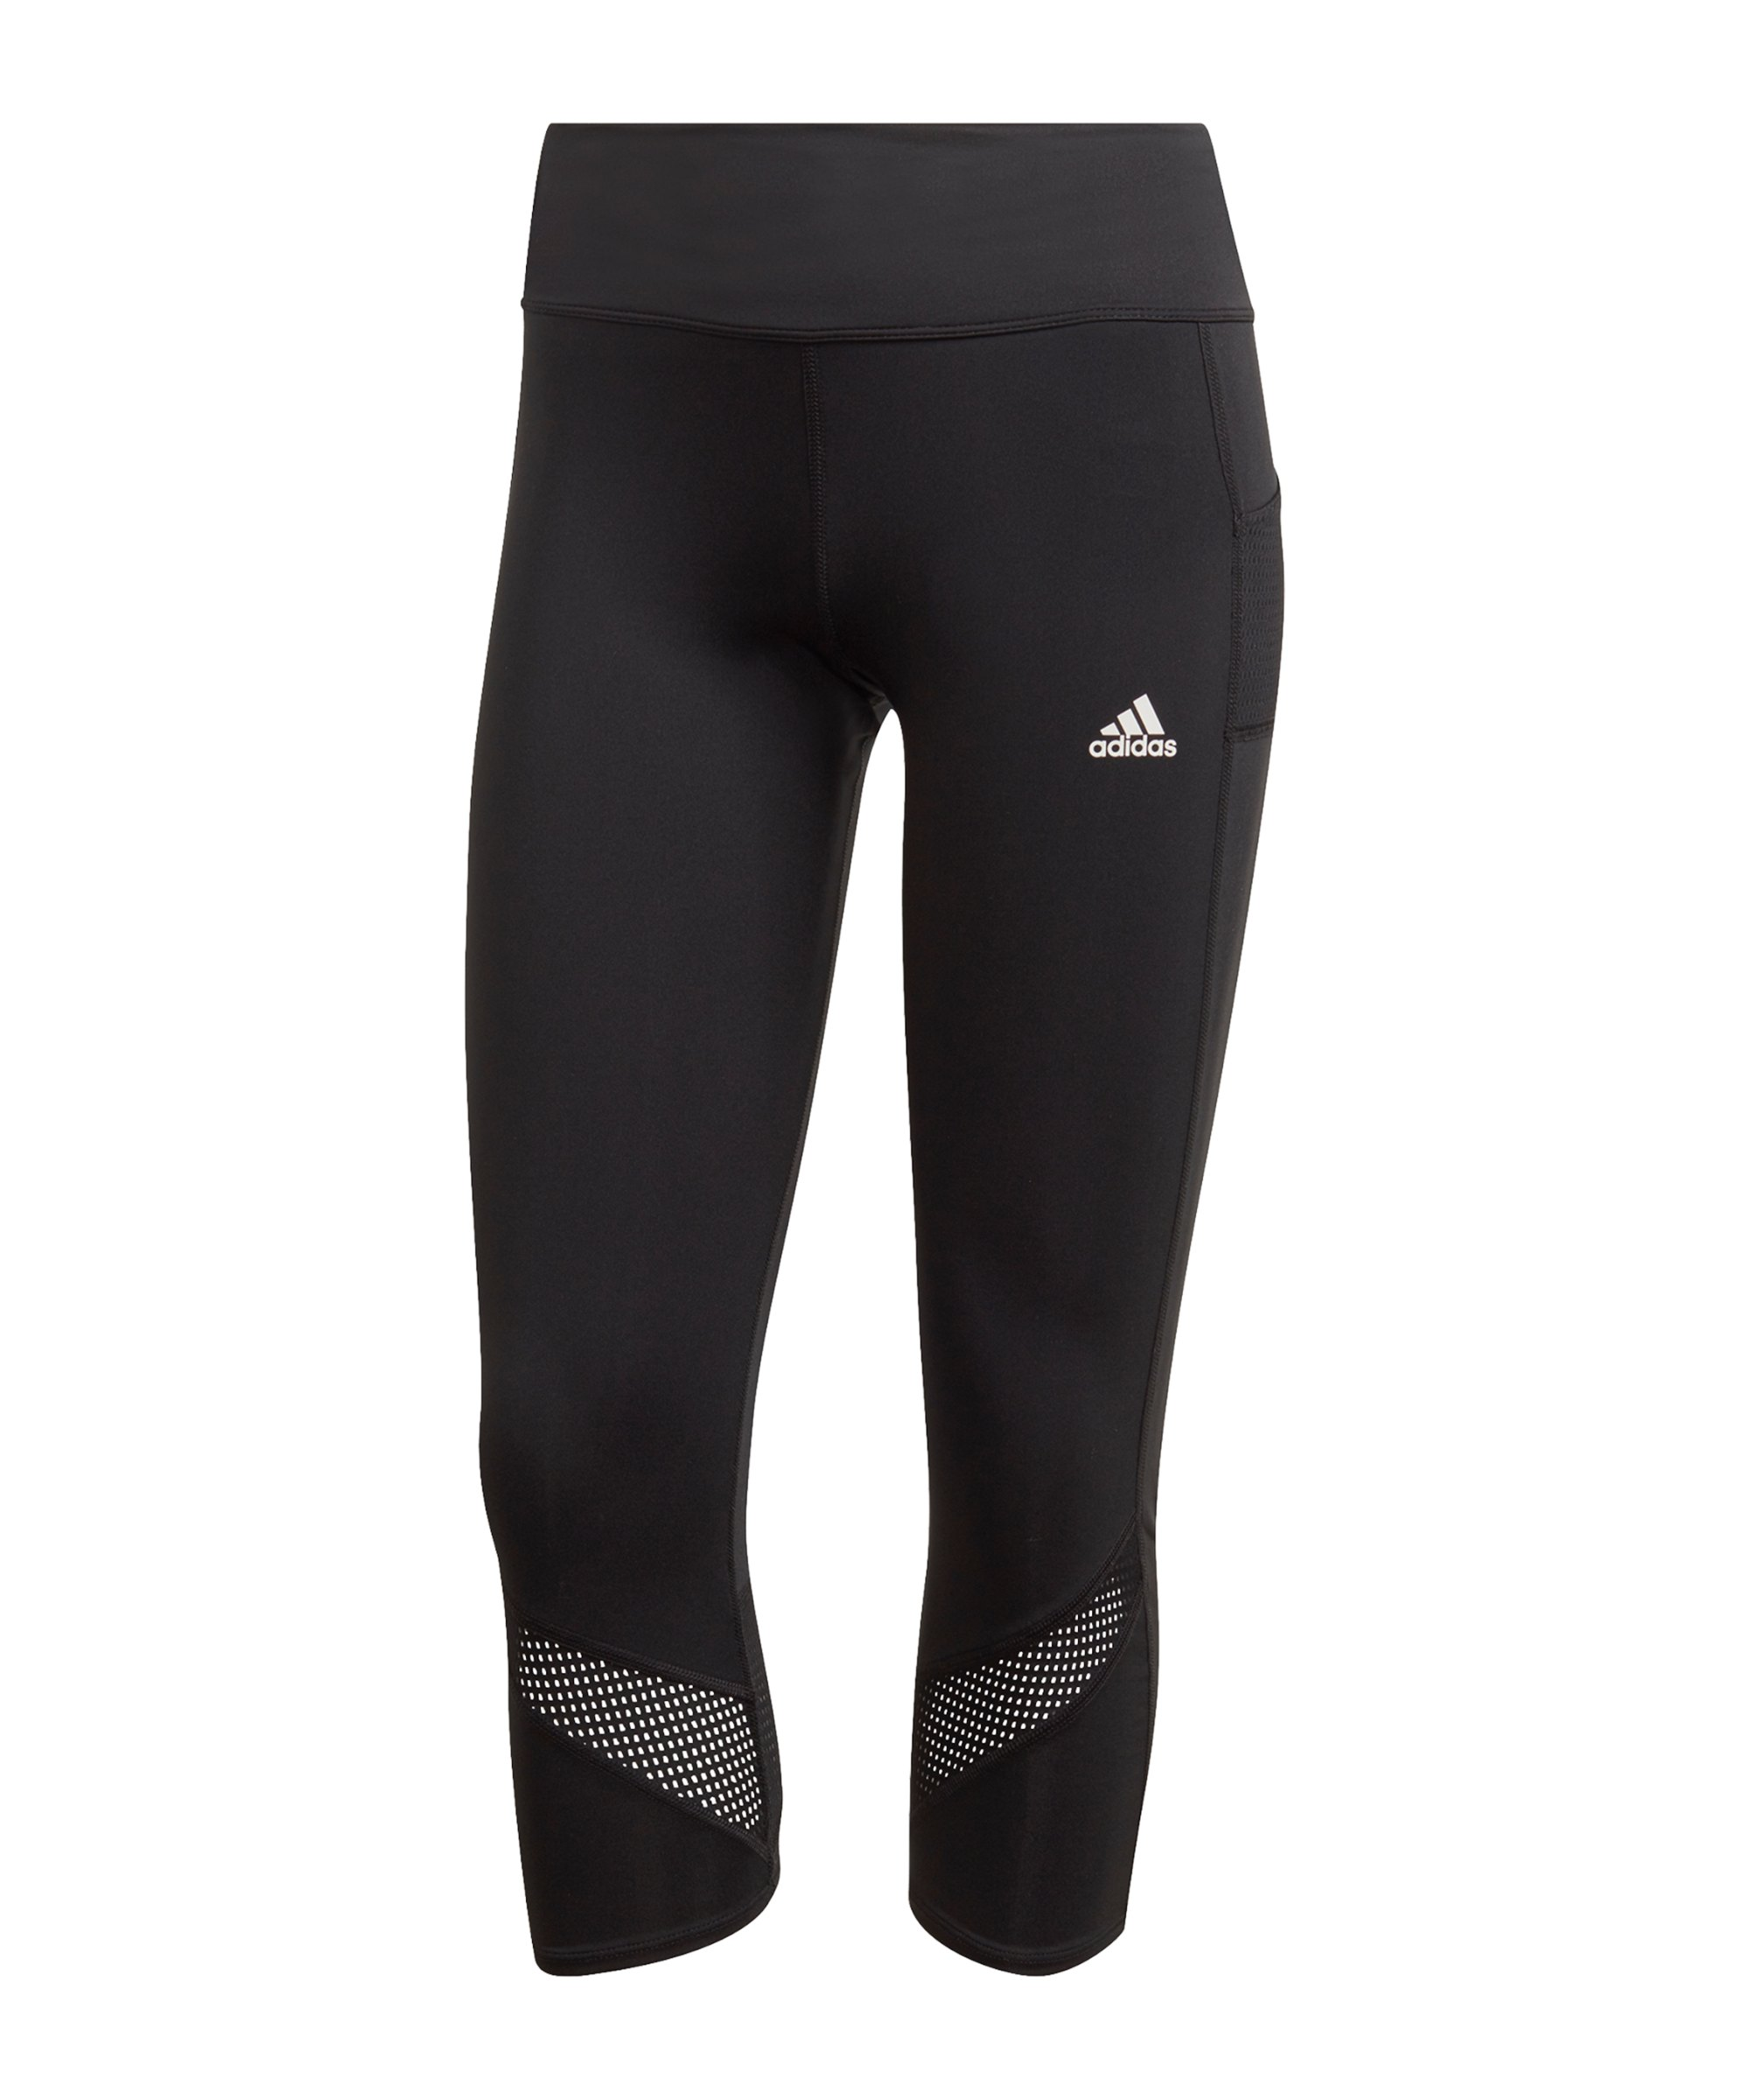 adidas Own the Run 3/4 Tight Running Damen Schwarz - schwarz